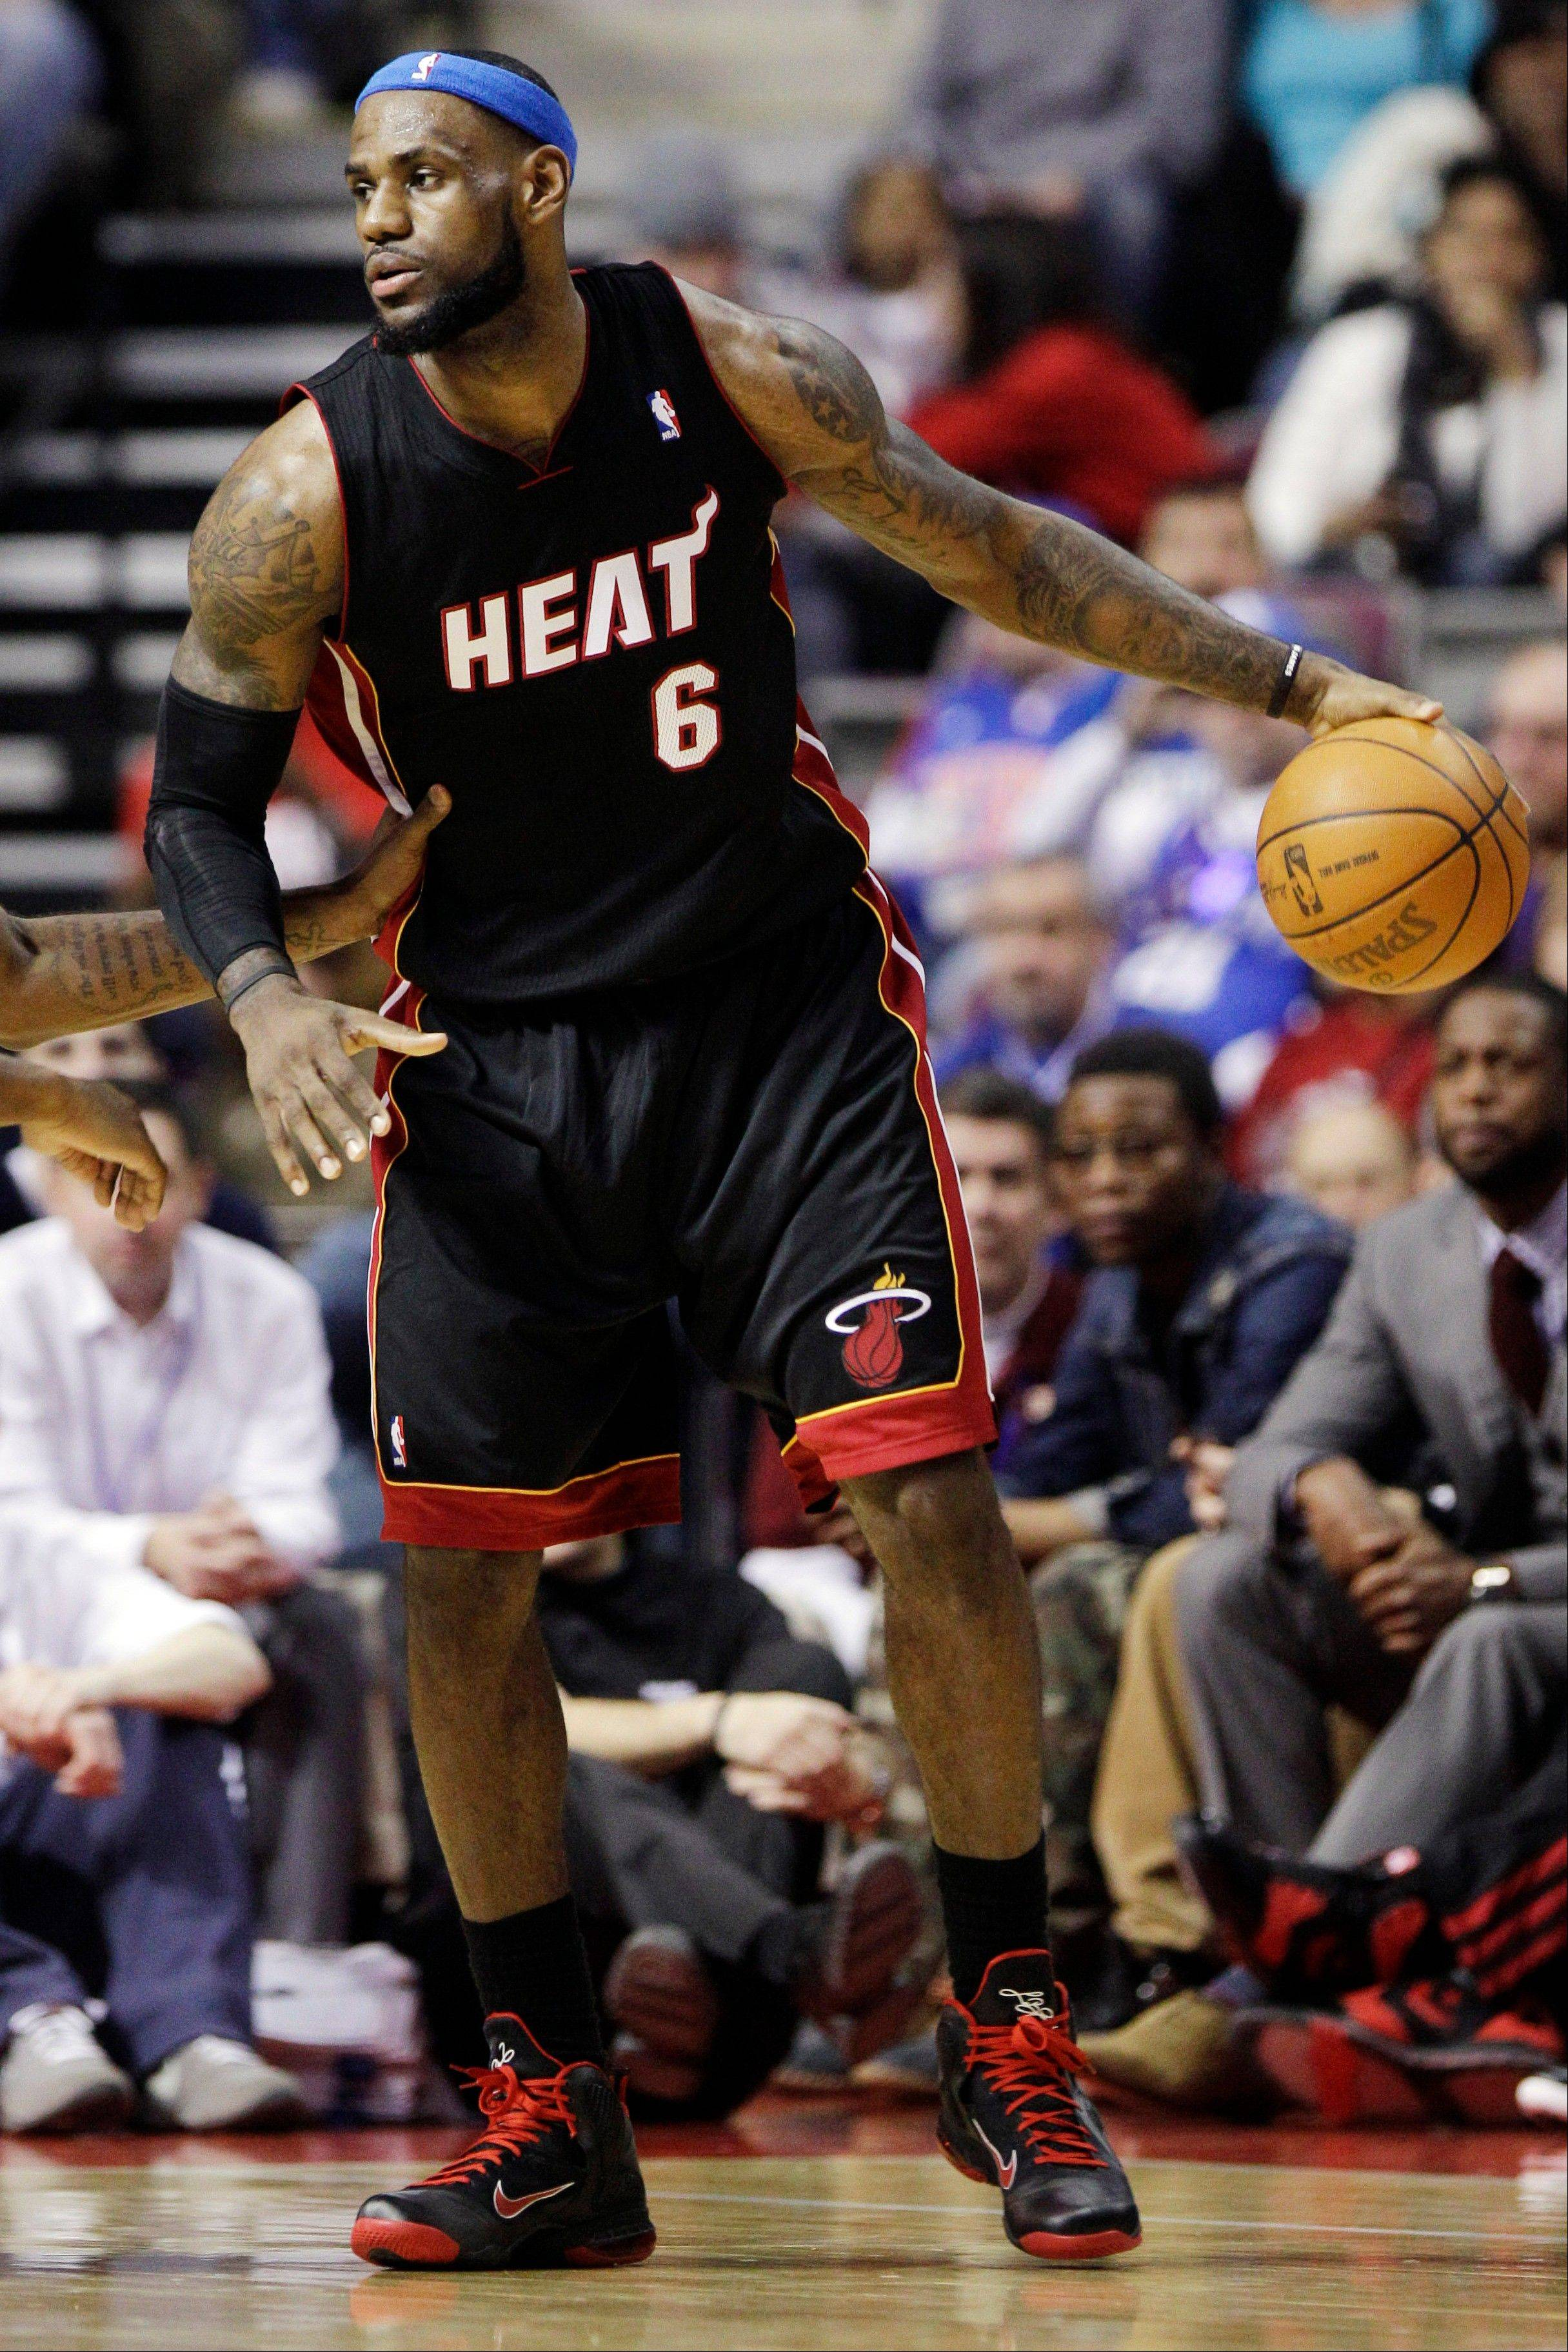 LeBron James' late FTs give Heat 101-98 win over Pistons